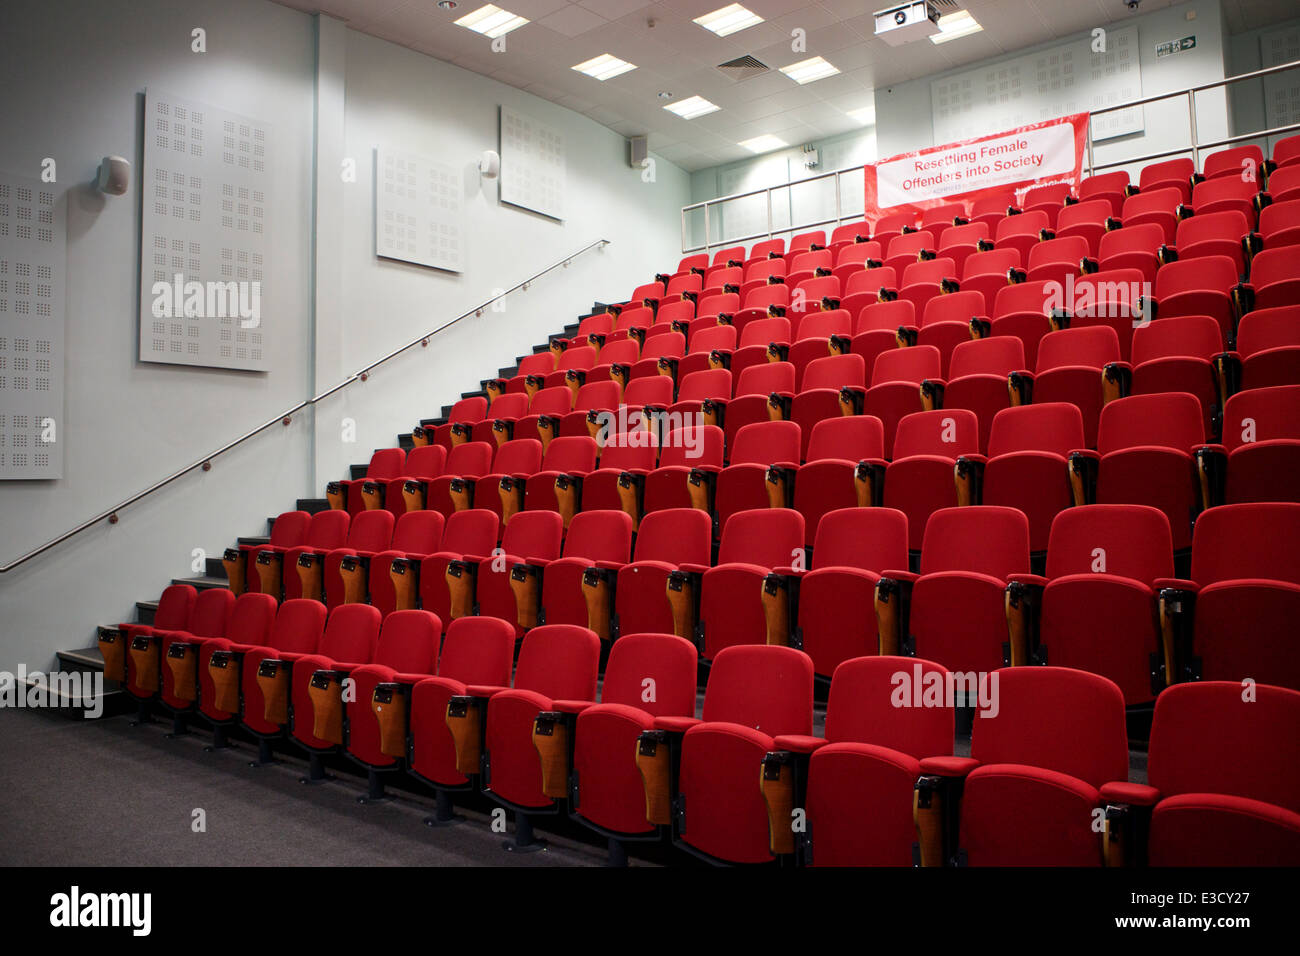 An empty university lecture theatre with red seats - Stock Image